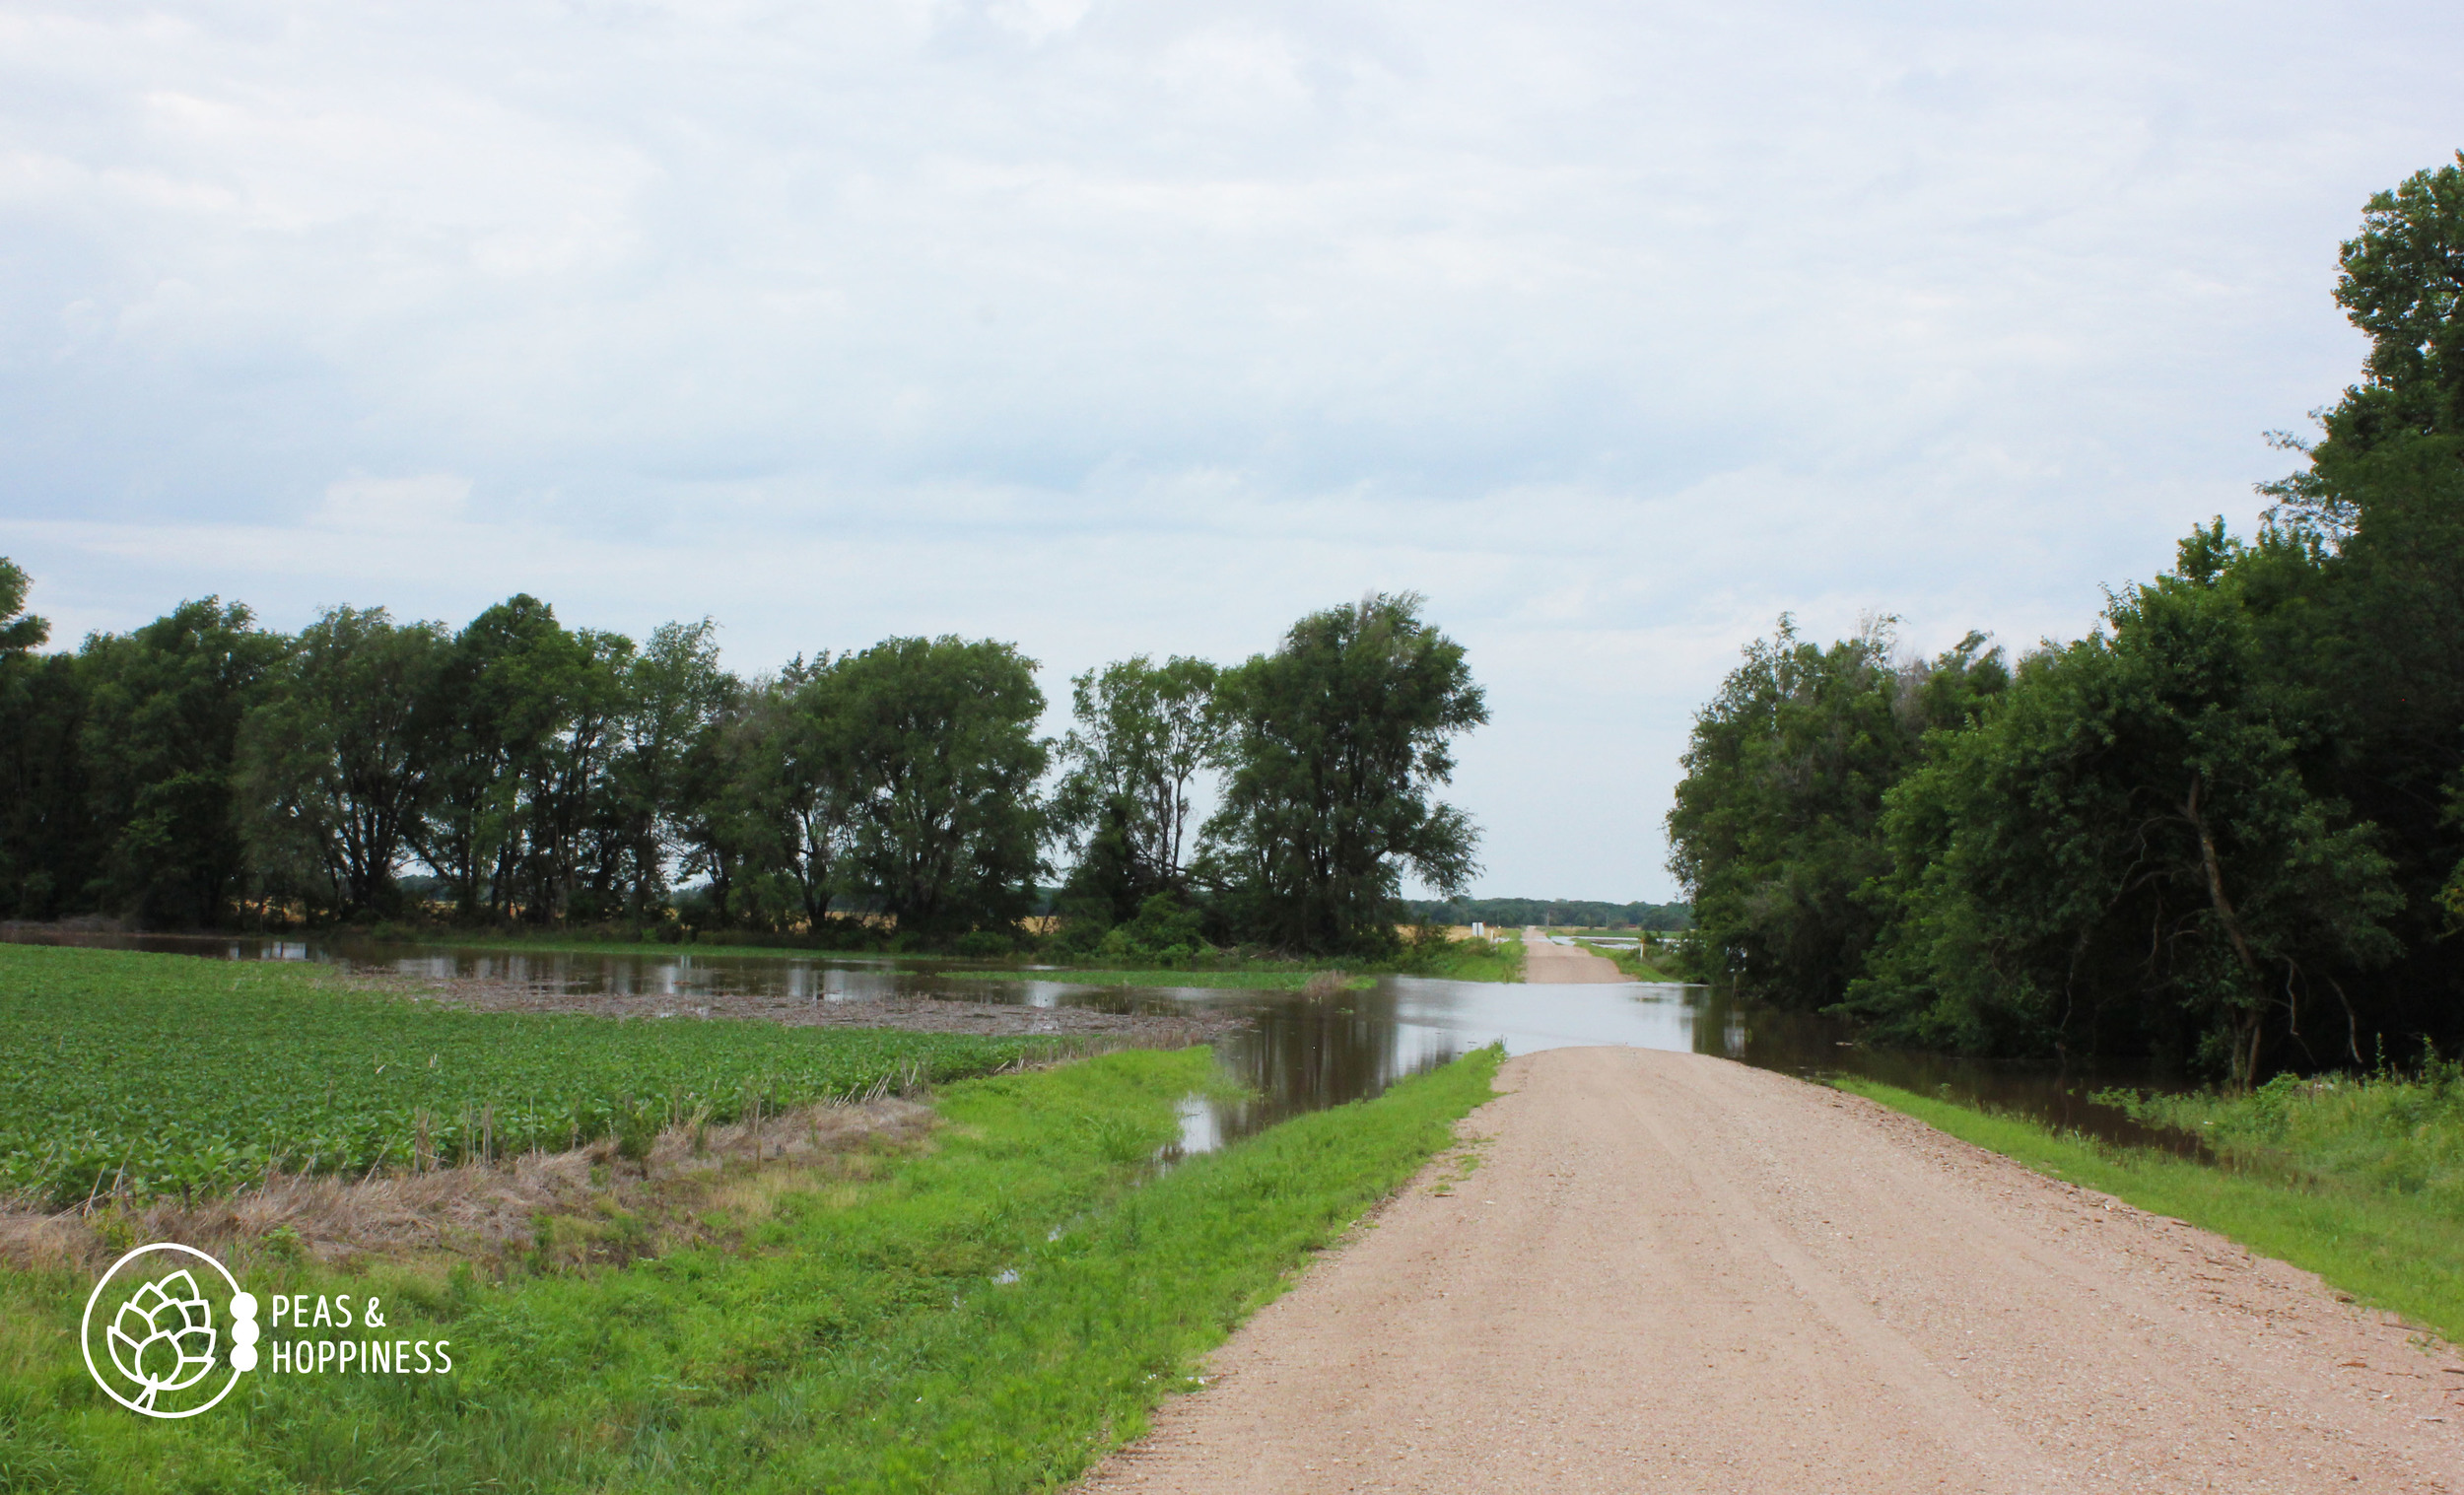 Water, water, everywhere! Flash flooding all across Rice County last weekend